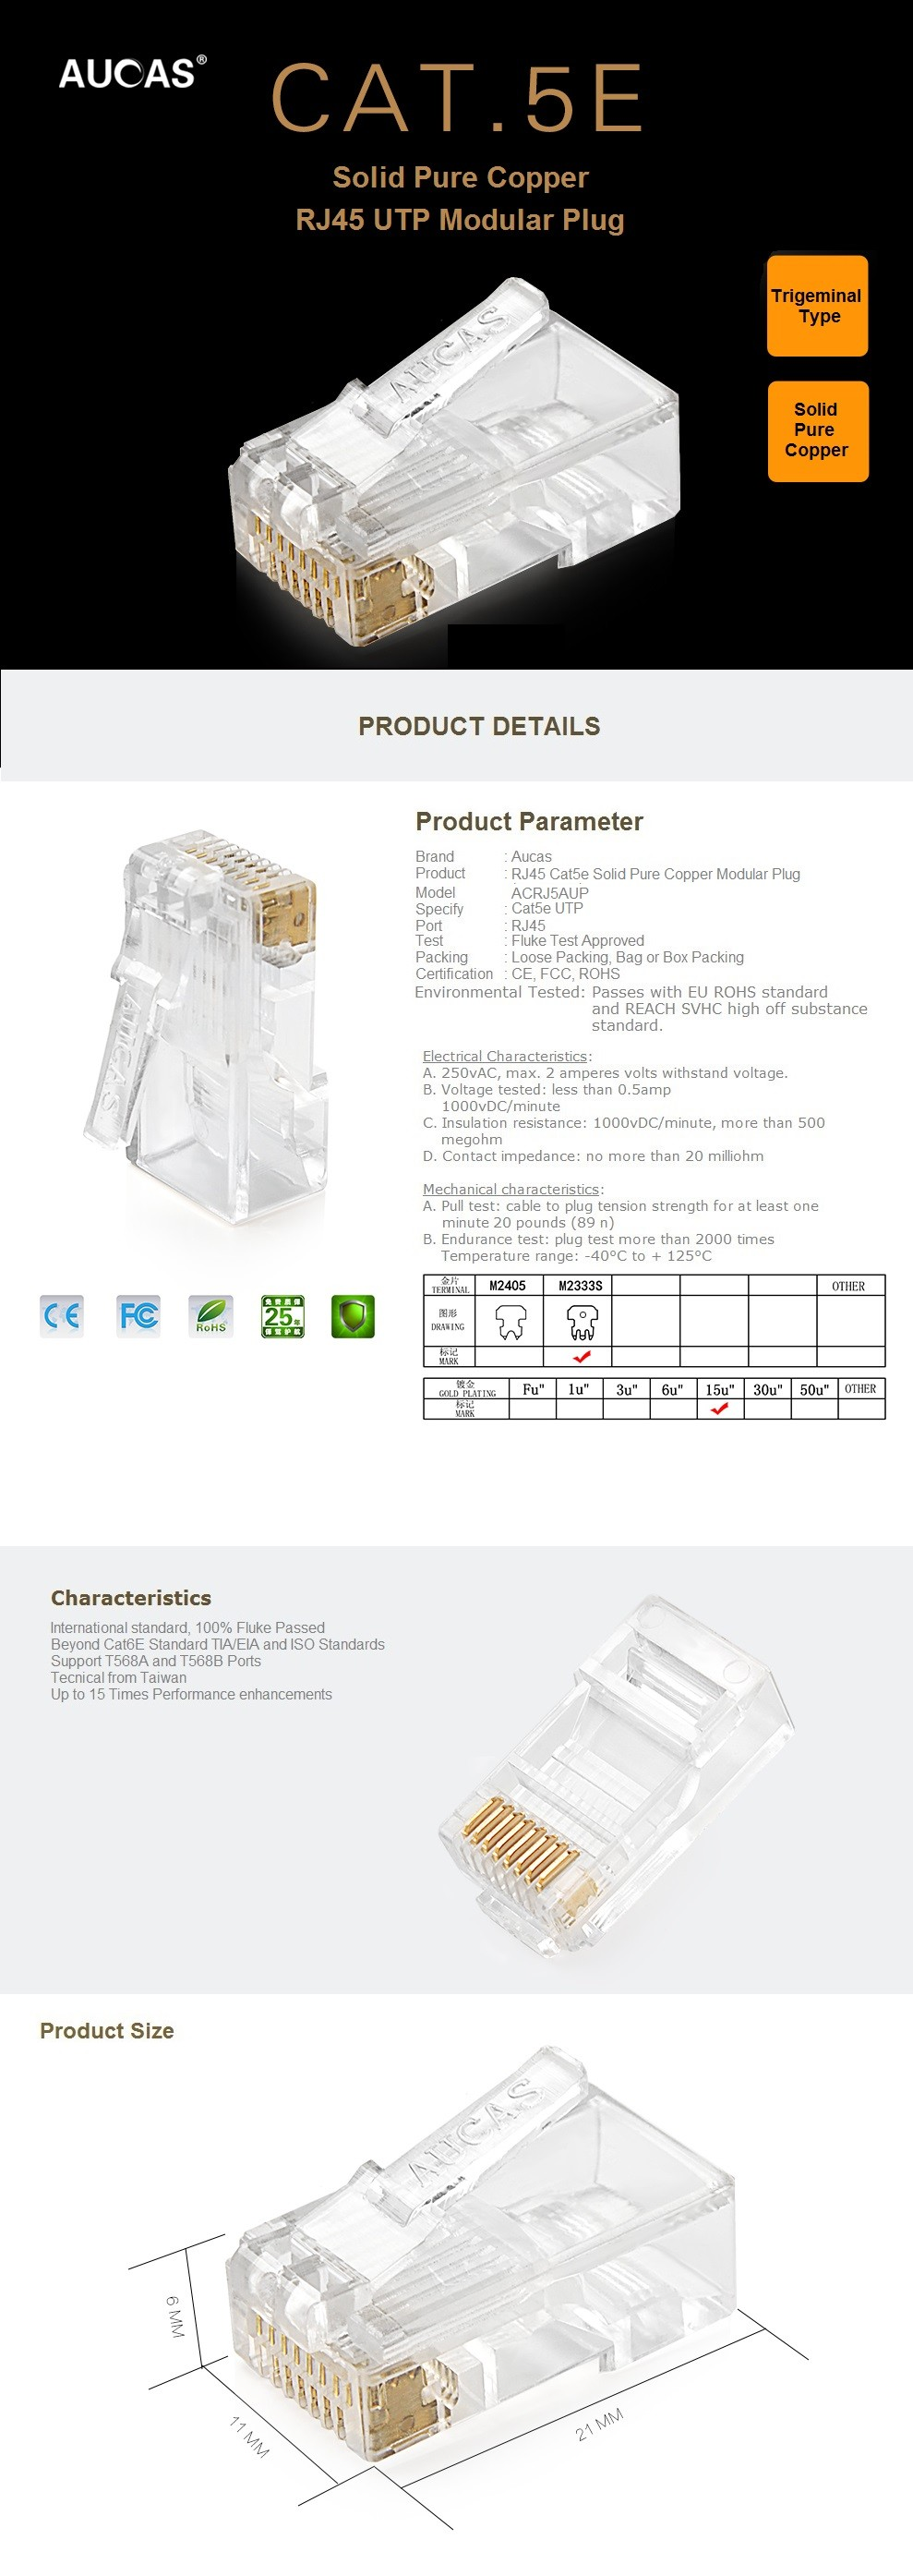 Phenomenal Cat 6E Cat 5 E Utp Rj45 Module Plug With Cat5 Cable Wiring Cover Wiring Digital Resources Remcakbiperorg